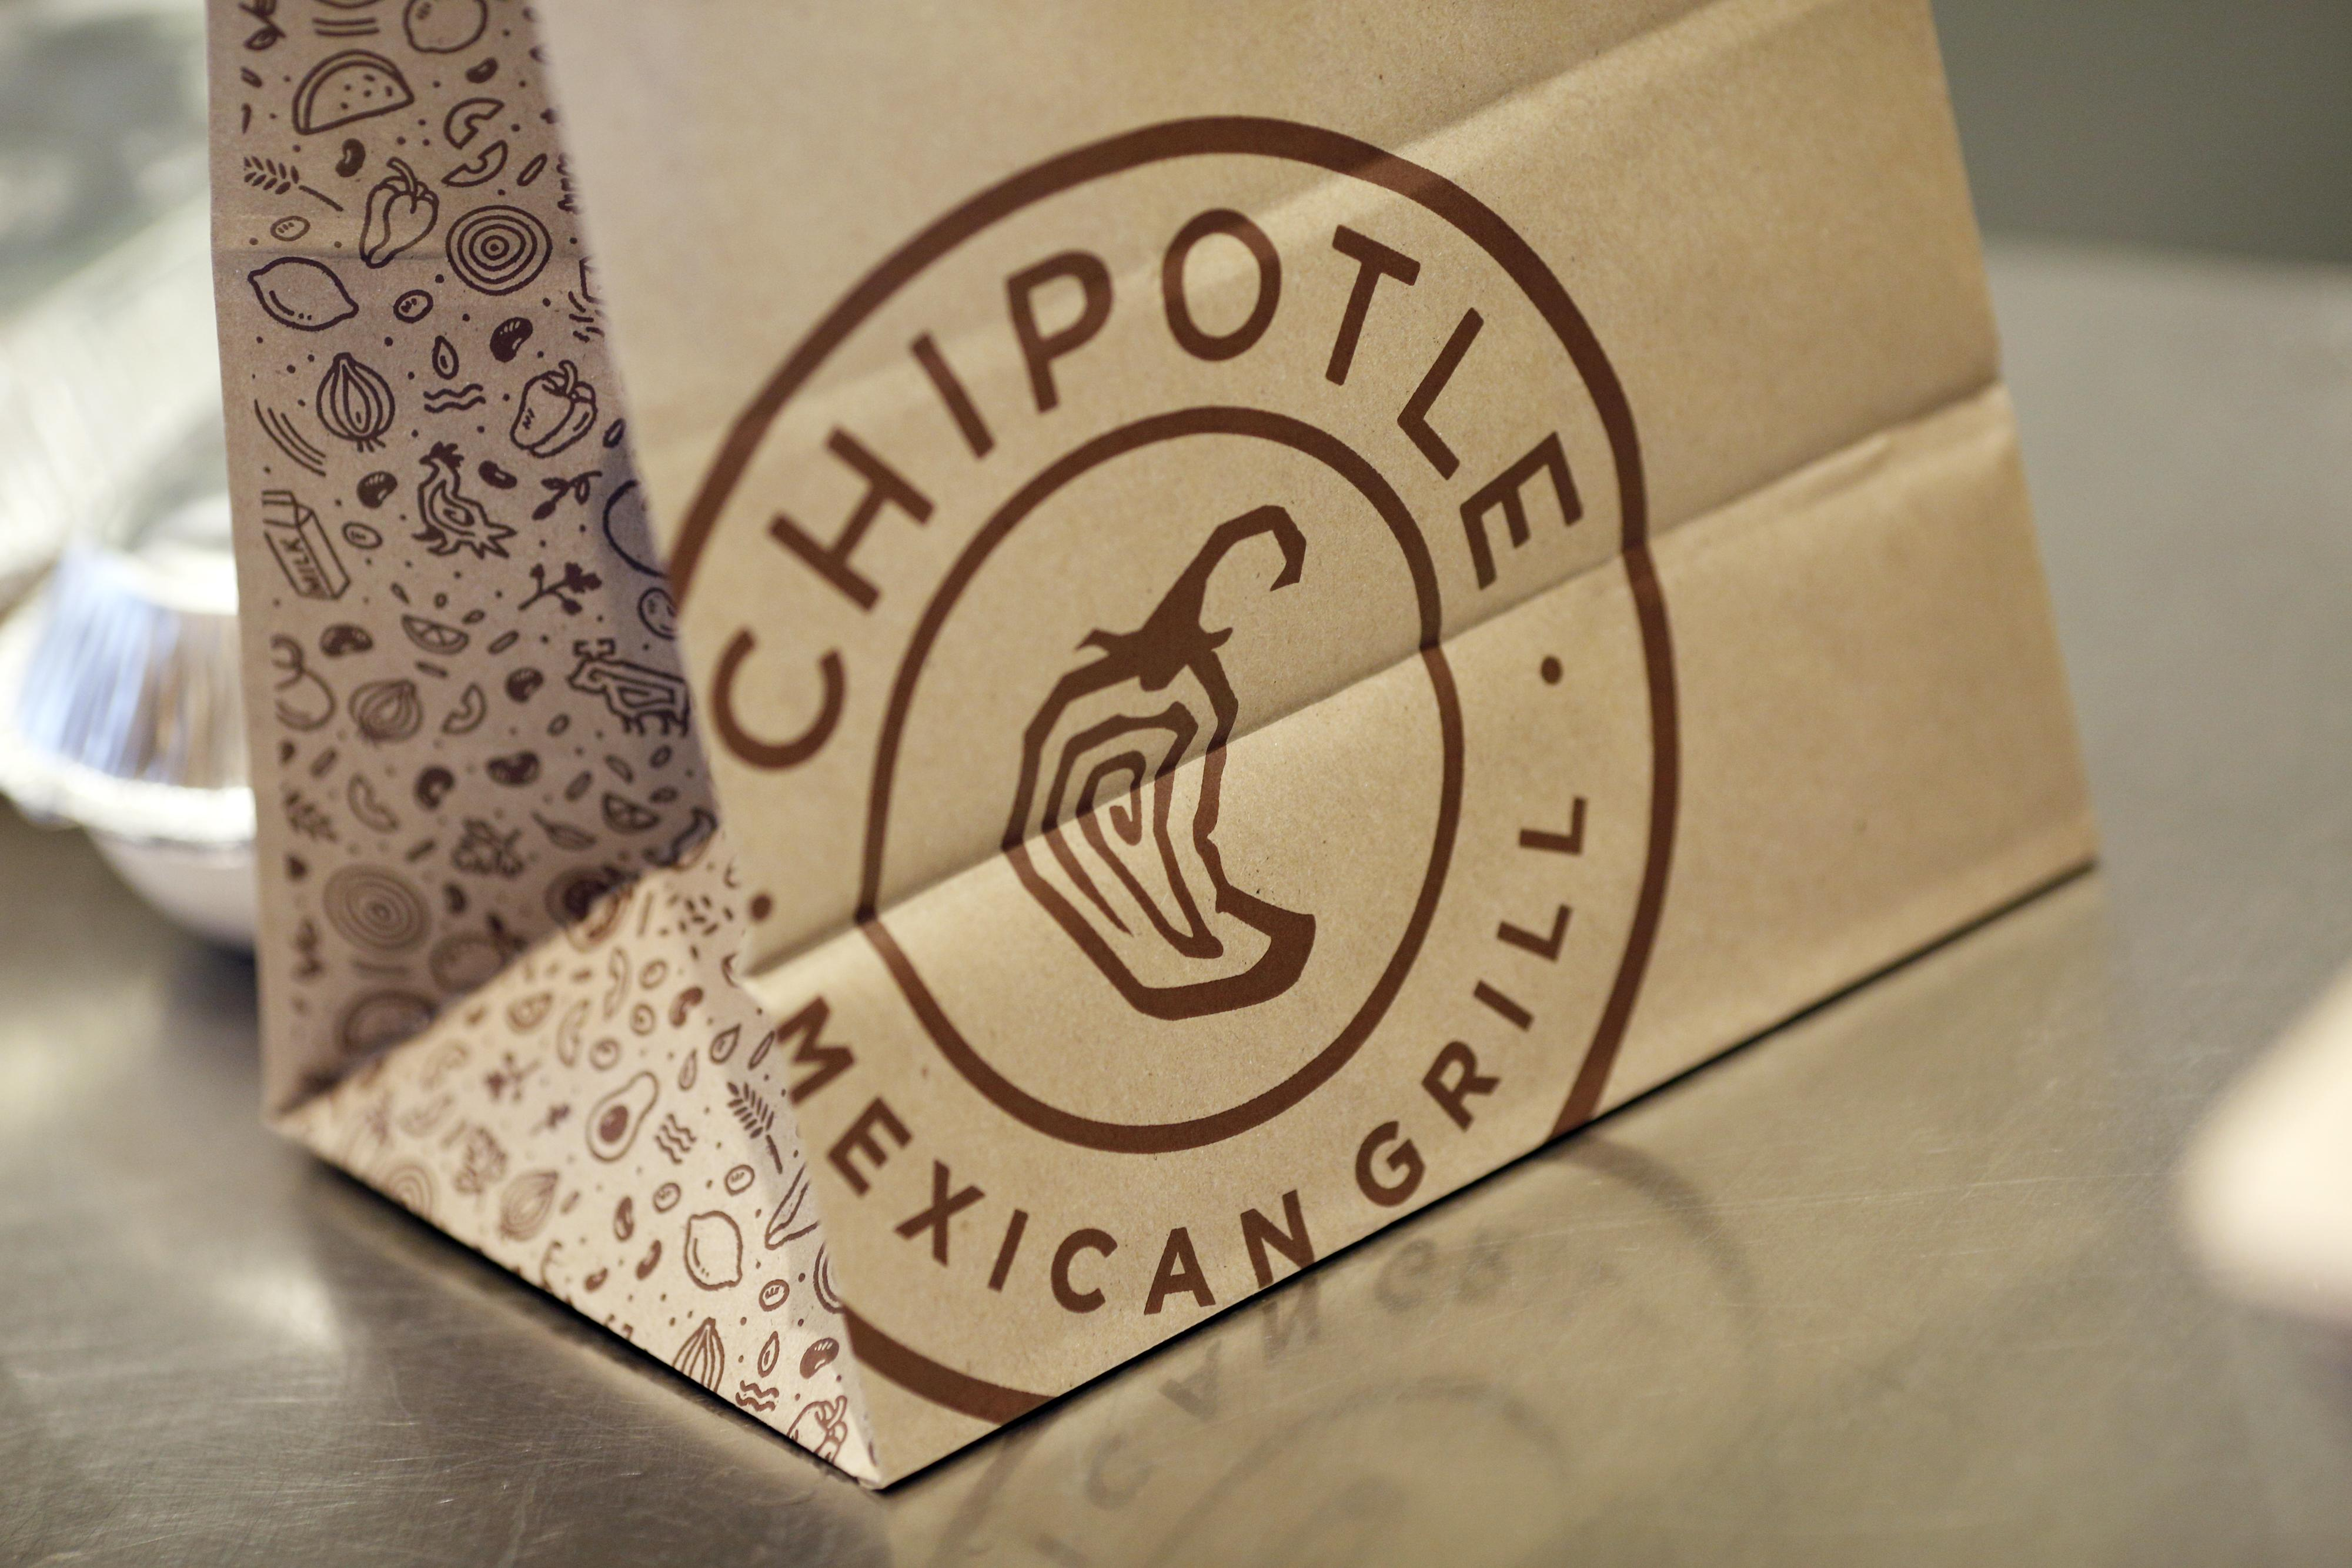 Chipotle CFO on Earnings After Subpoena Related to Ohio Illnesses